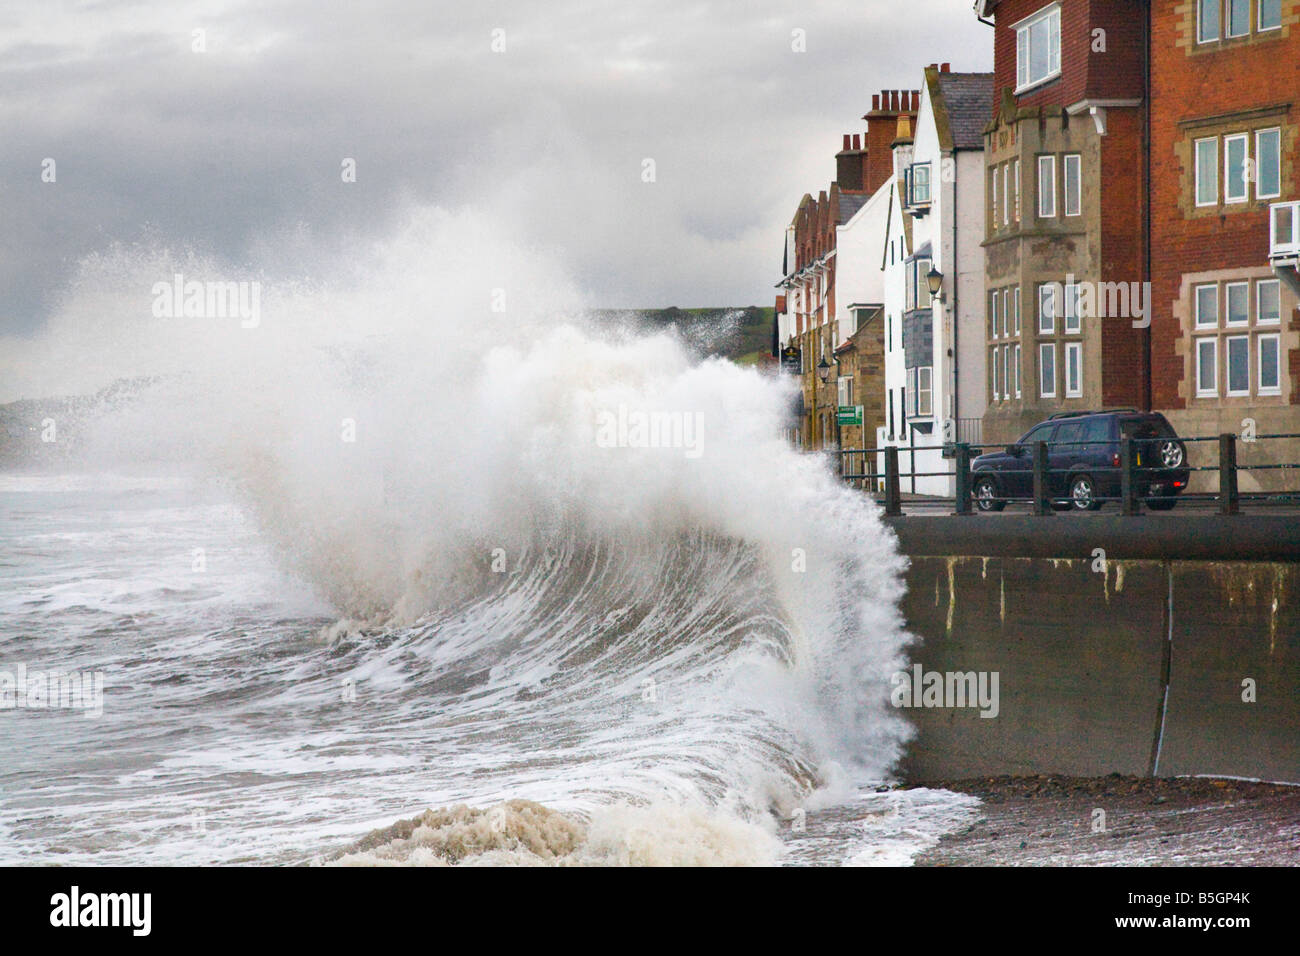 Extreme weather Storm seas surge and wave reflection wall at Sandsend, Whitby, Yorkshire, UK. Seaside properties Stock Photo